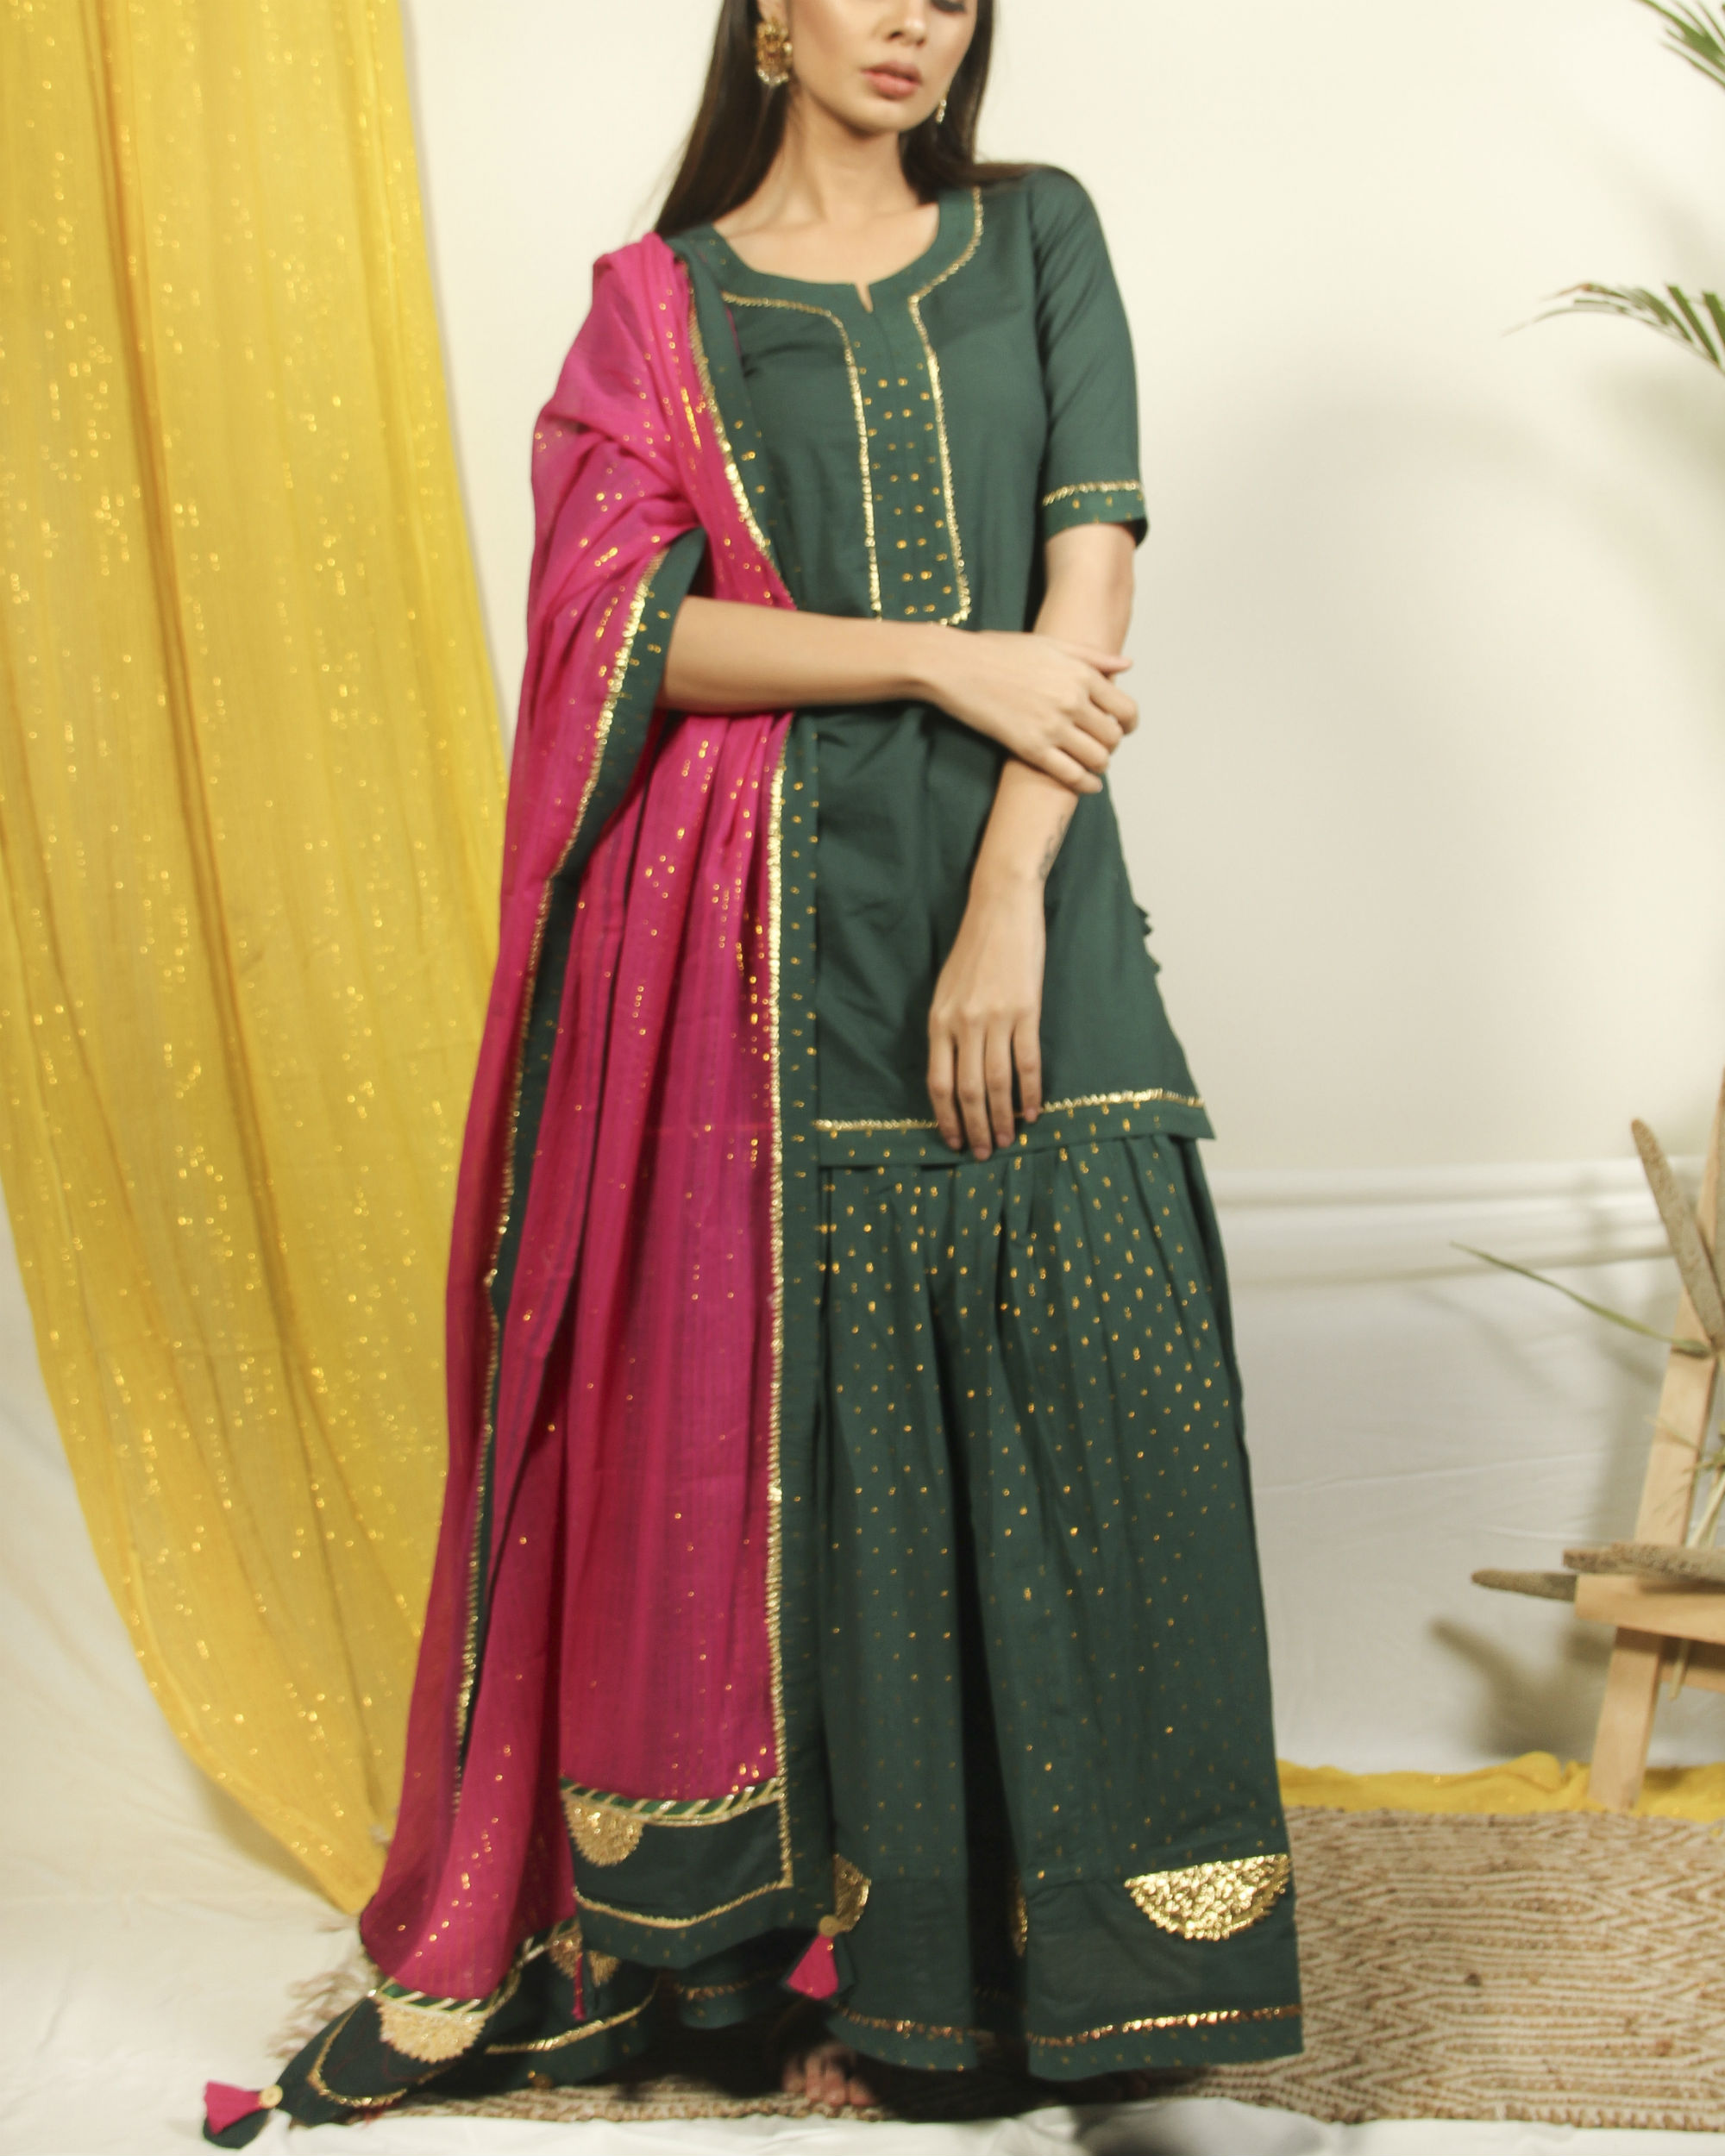 Pine green kurta lehenga set with dupatta